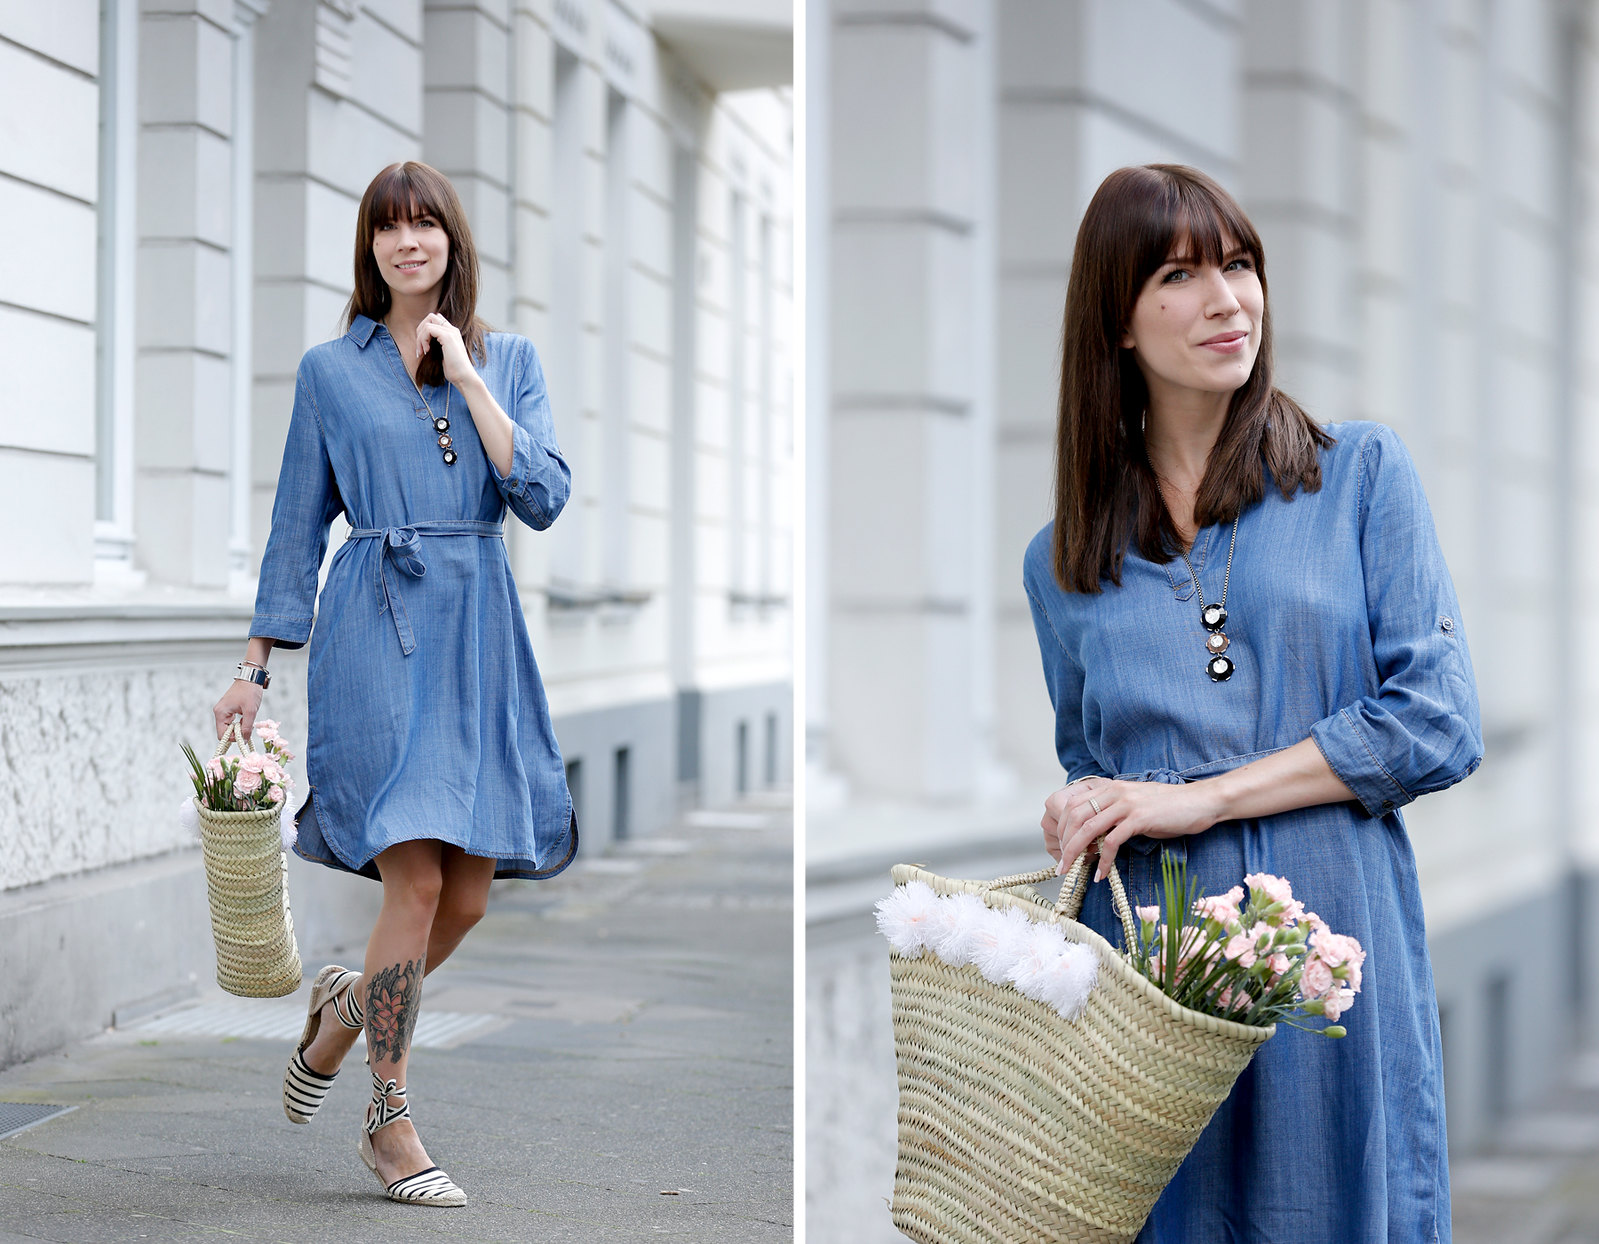 outfit triangle s.oliver blue denim dress espradrilles jane birkin beach bag flowers summer paris parisienne fashionblogger germany berlin brunette bangs chic cats & dogs fashionblog ricarda schernus modeblogger 4